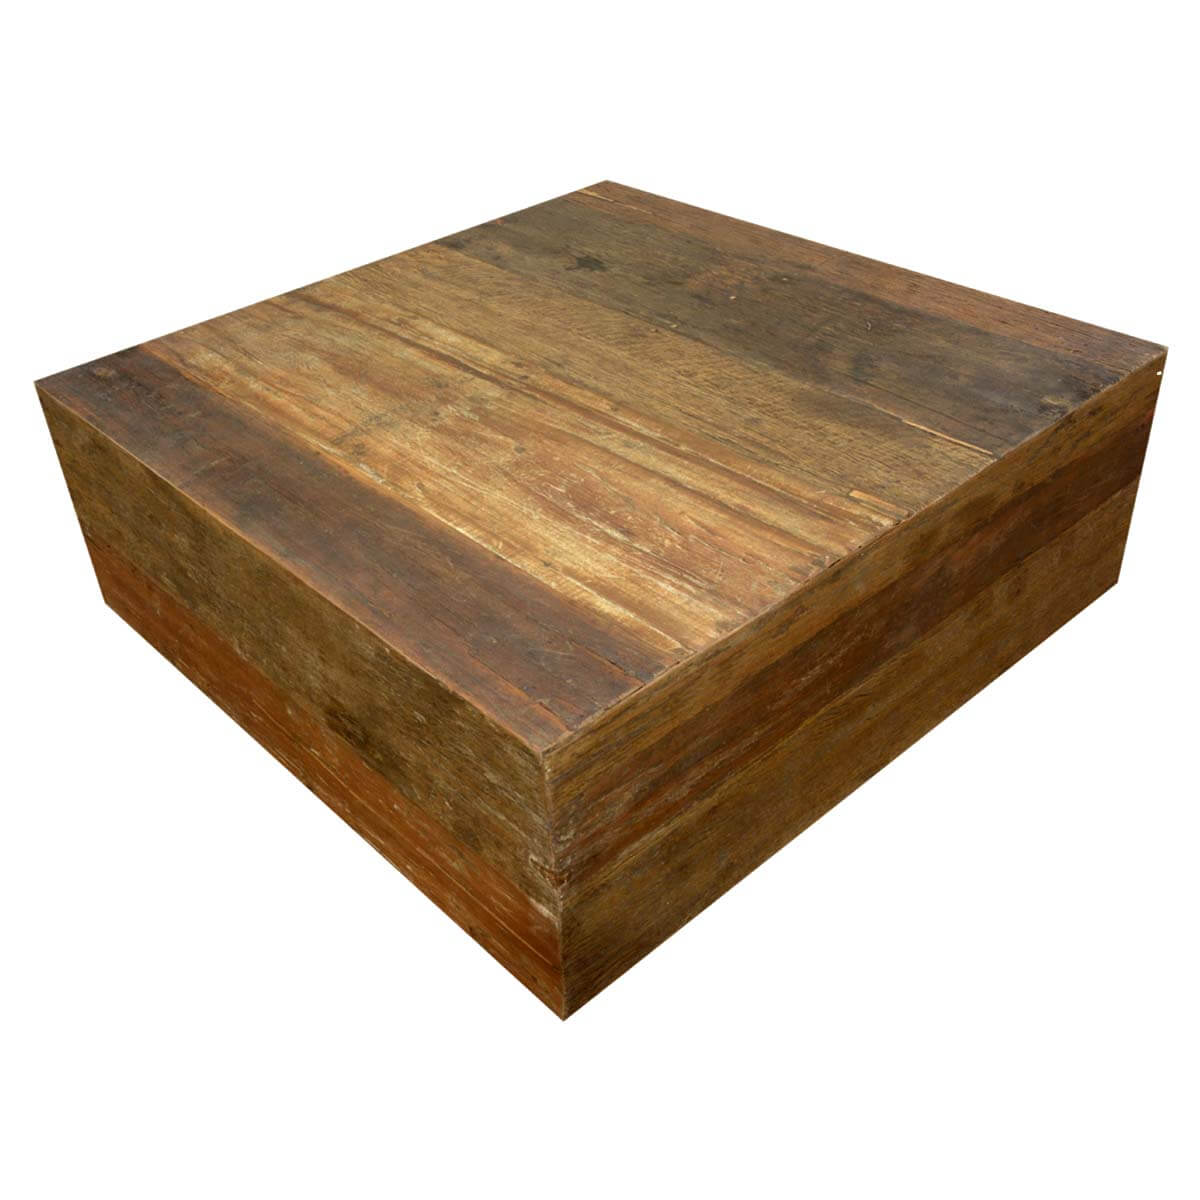 Appalachian rustic old wood square box style coffee table Rustic wooden coffee tables